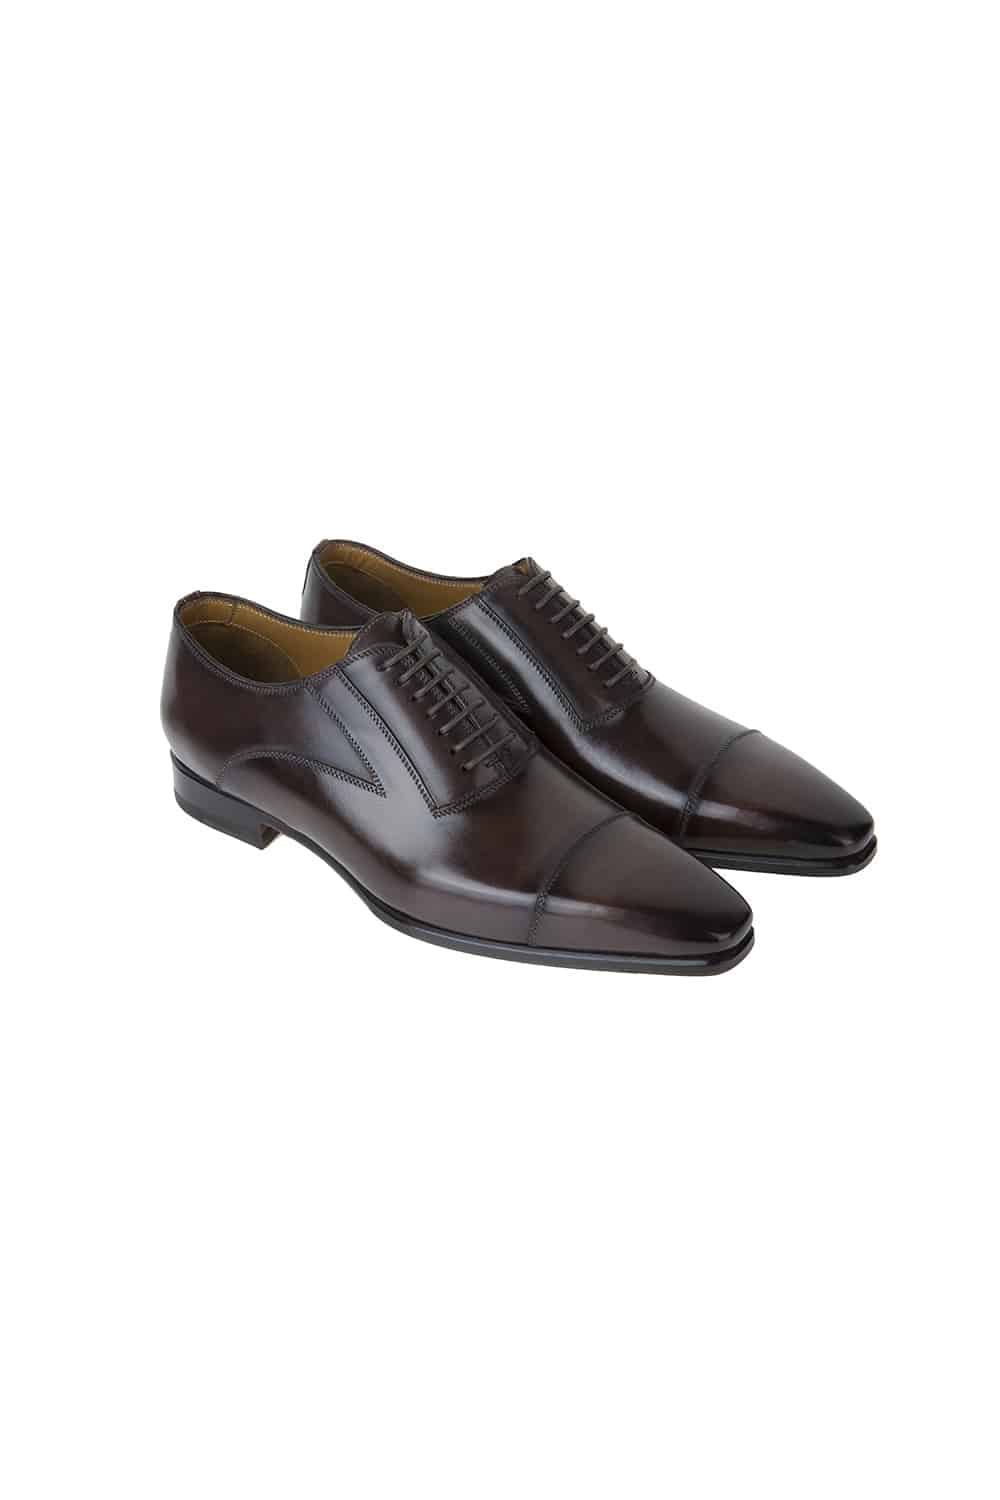 chaussures costumes marcon